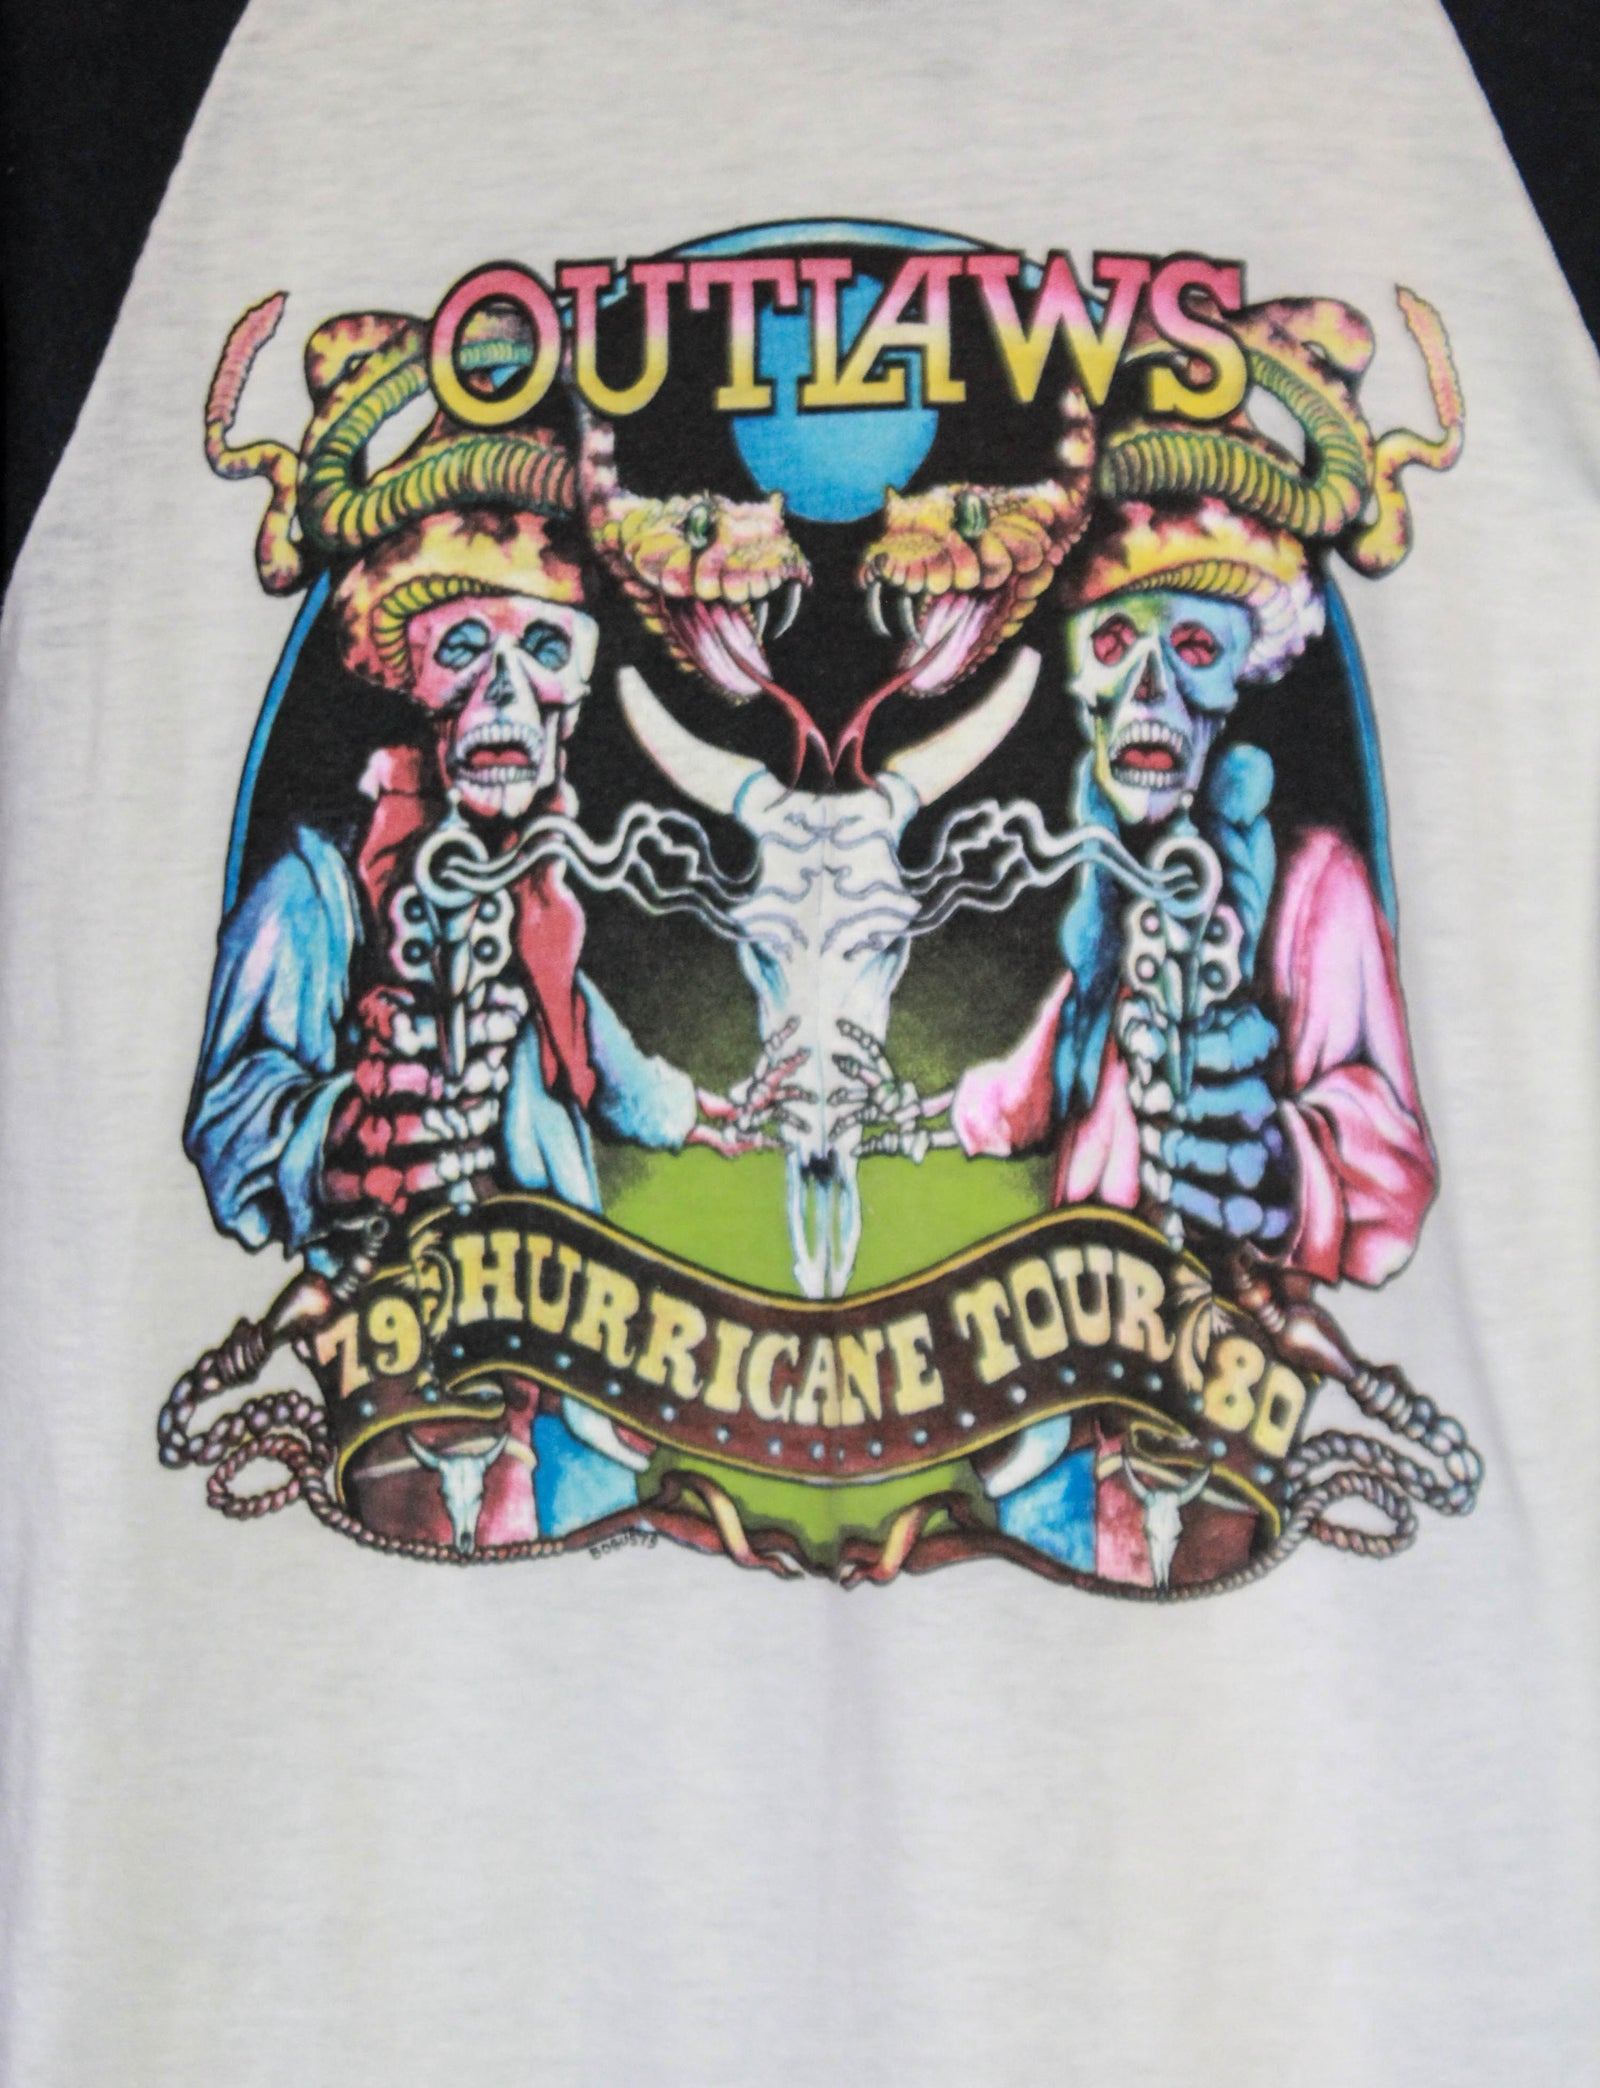 Vintage Outlaws Concert T Shirt 1979-80 Hurricane Tour Jersey Unisex Large